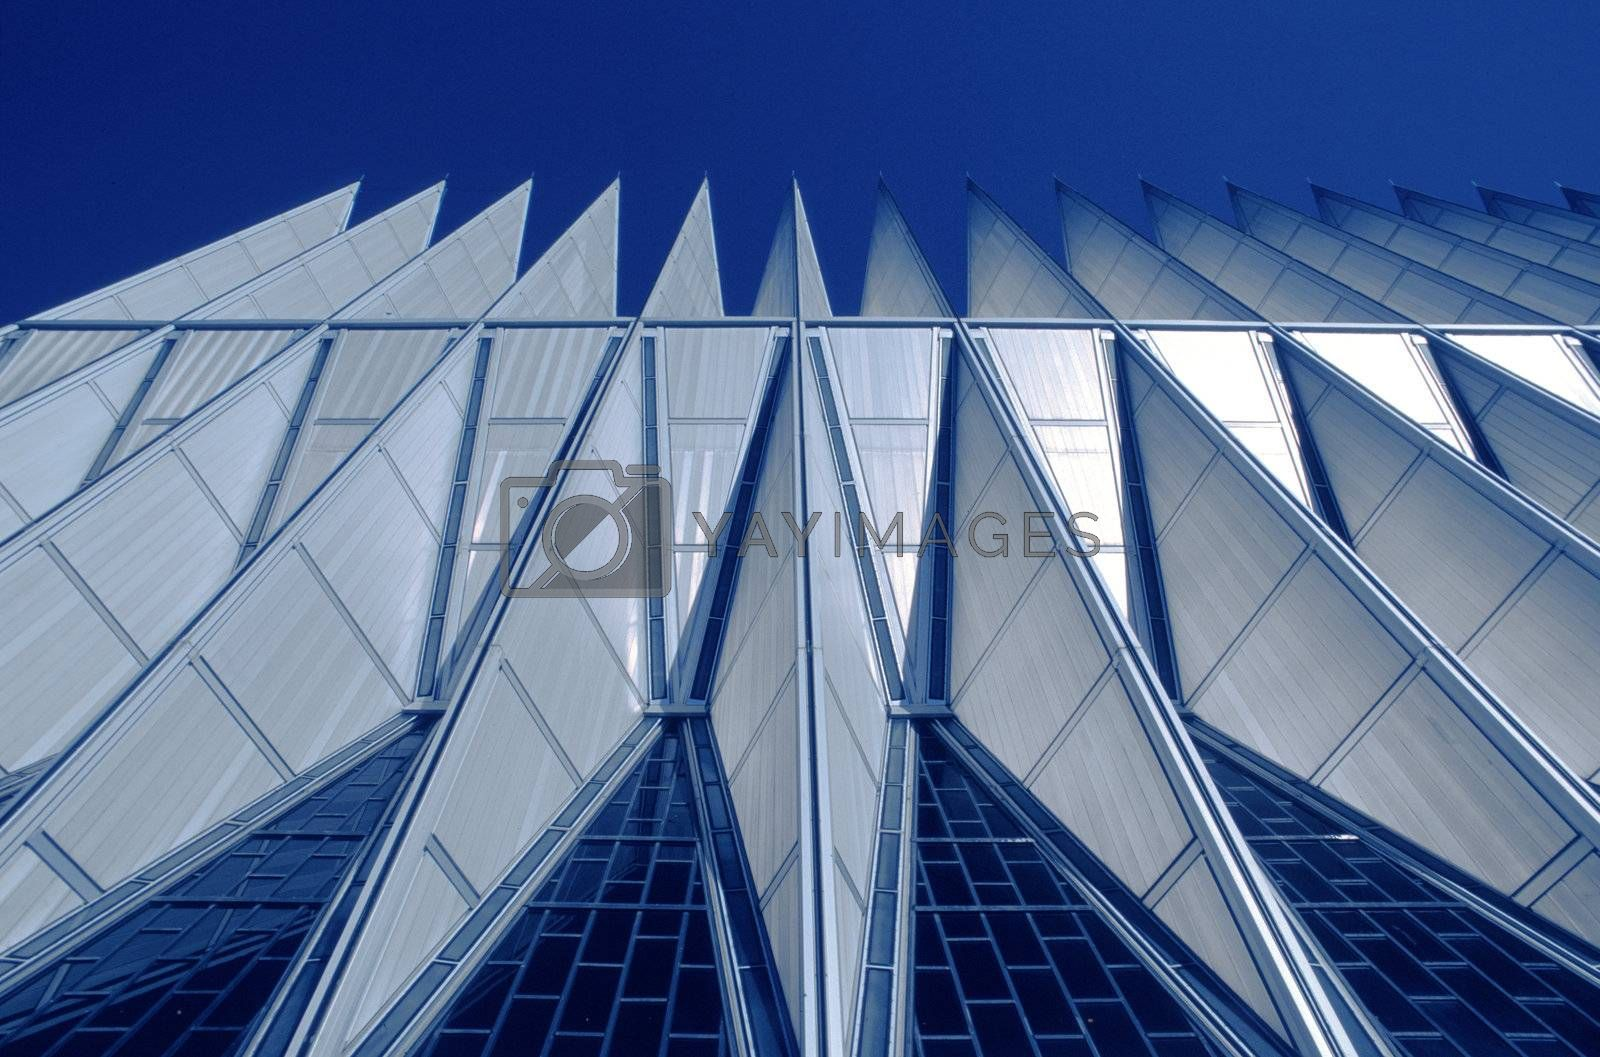 Chapel Detail, at Air Force Academy, Colorado Springs